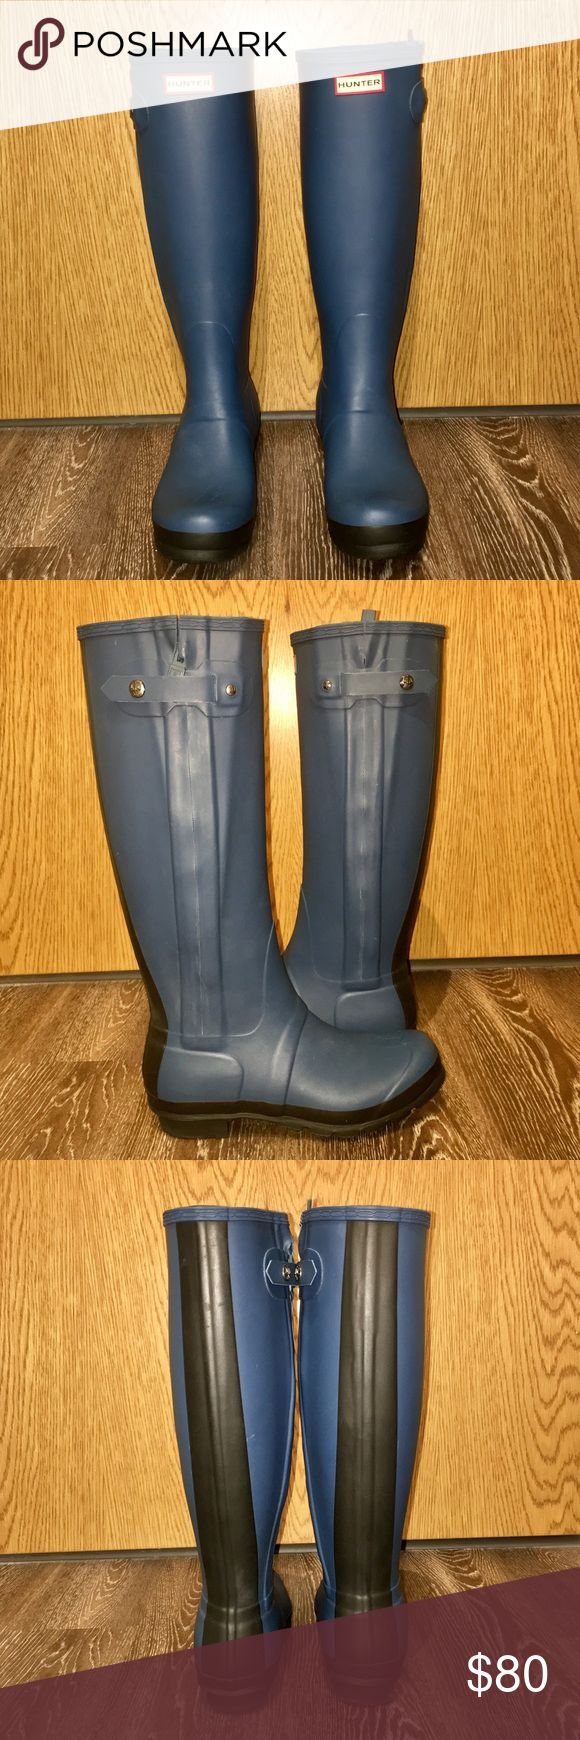 """Women's Original Slim Textured Rain Boots These boots are approximately one year old. They haven't been worn much, almost perfect condition! According to the Hunter Boot website, the color is """"Azure"""". Super comfy and cute with almost any outfit! Hunter Boots Shoes Winter & Rain Boots"""